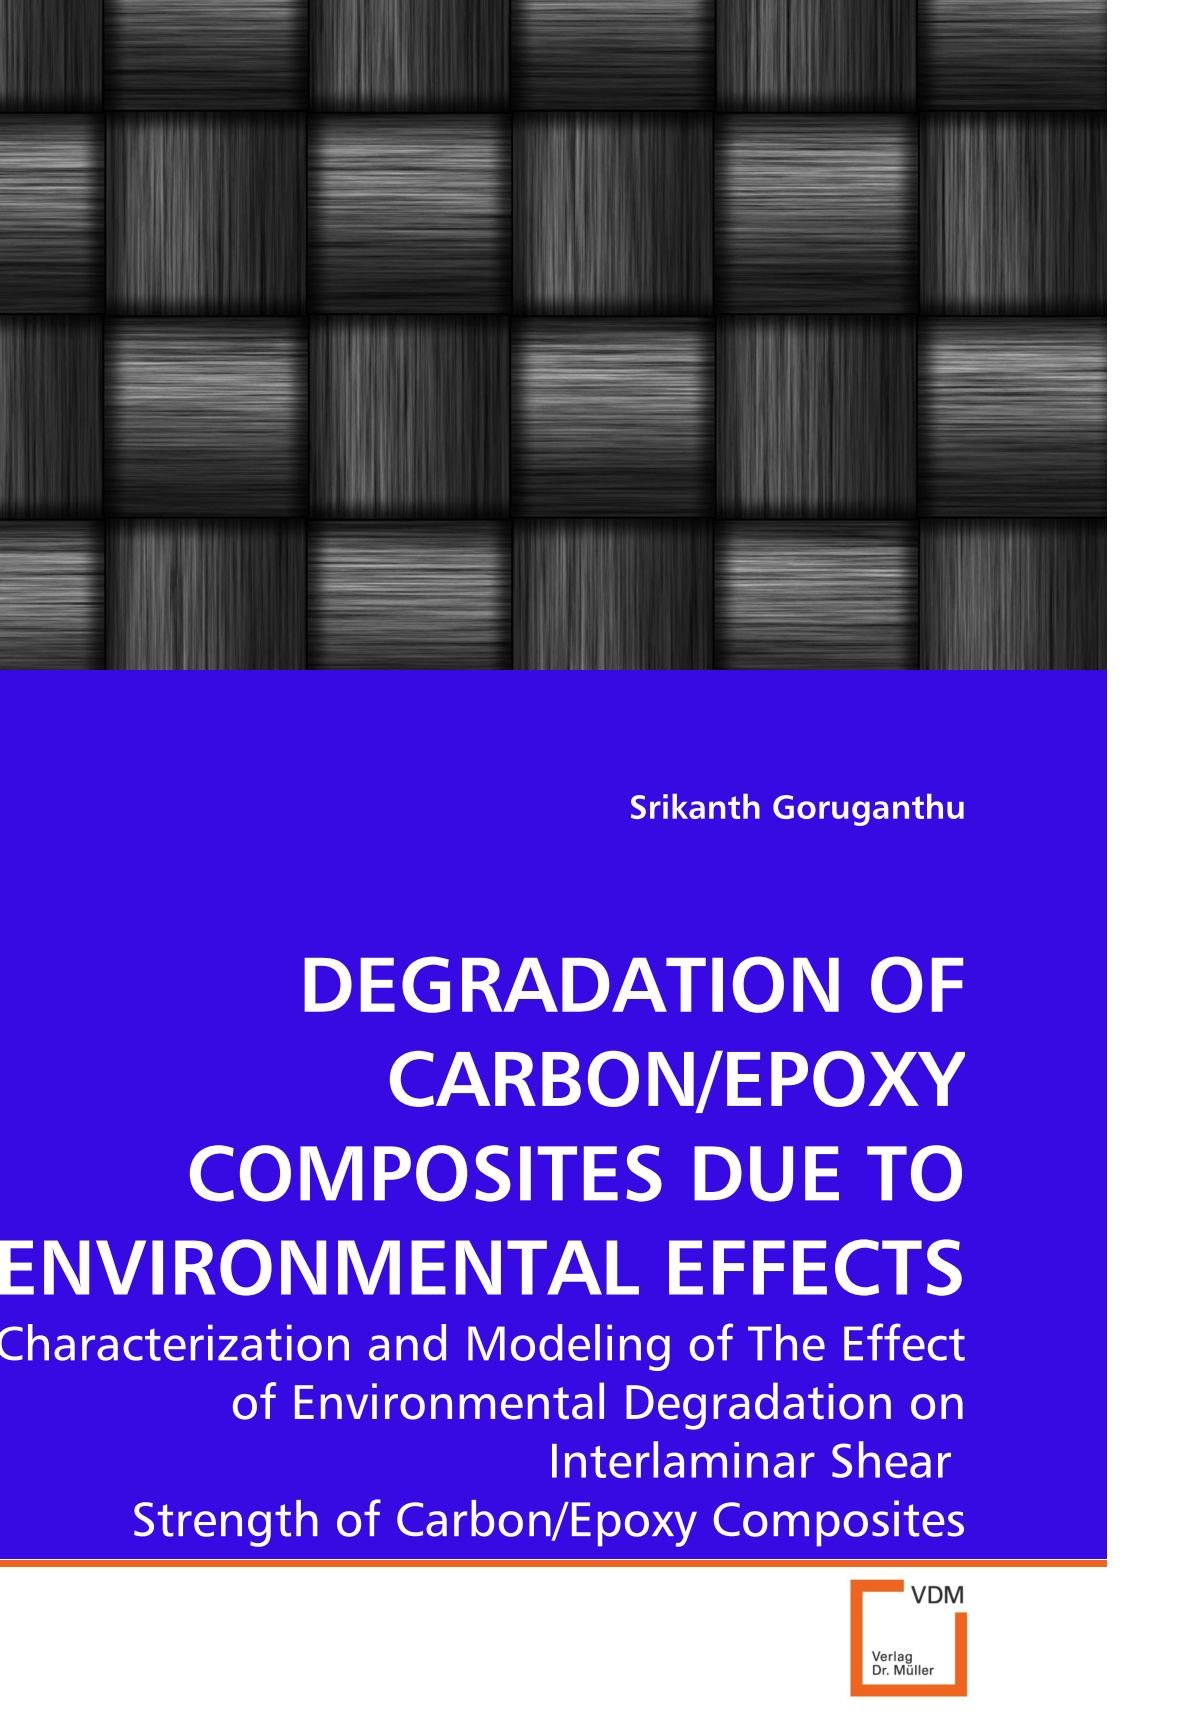 Download DEGRADATION OF CARBON/EPOXY COMPOSITES DUE TO ENVIRONMENTAL EFFECTS: Characterization and Modeling of The Effect of Environmental Degradation on Interlaminar Shear  Strength of Carbon/Epoxy Composites PDF